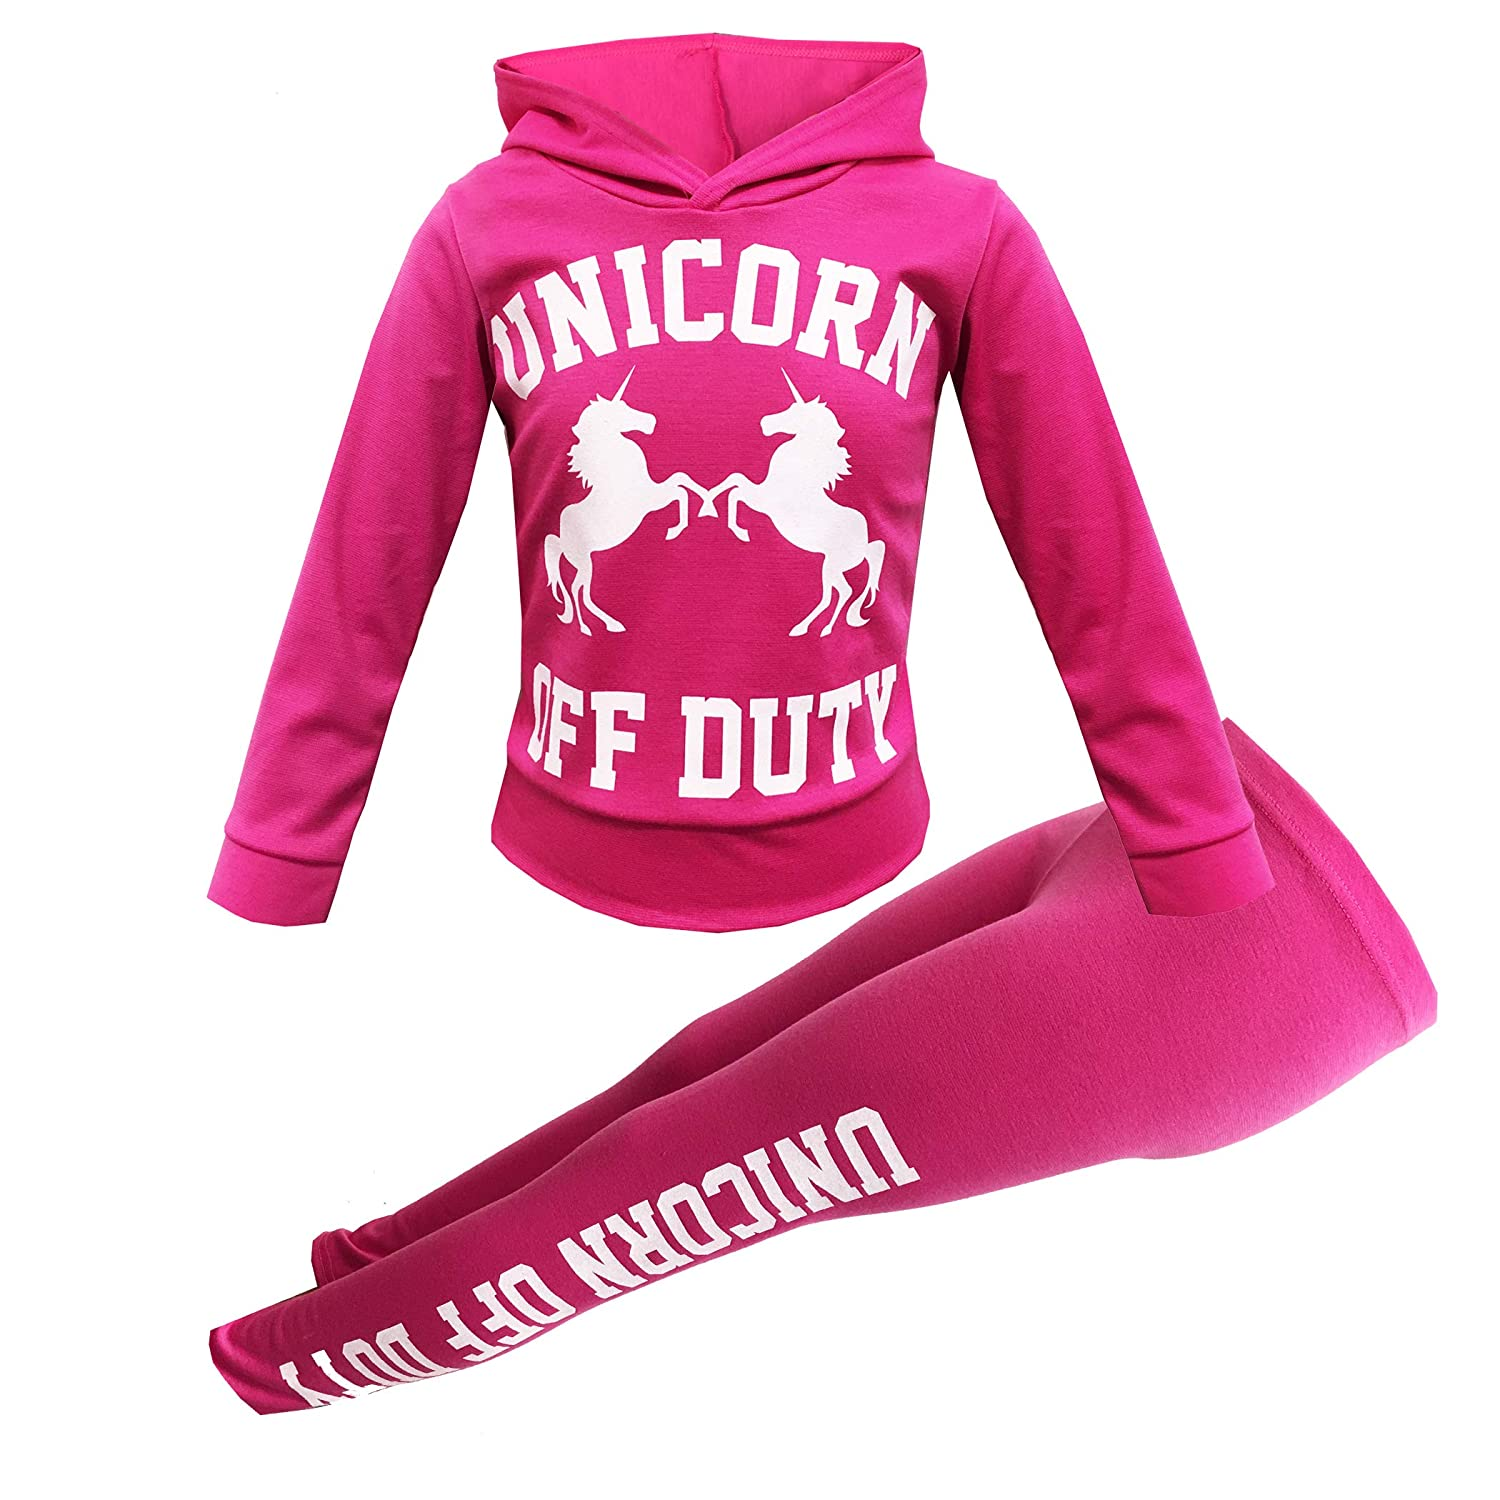 Girls Unicorn Off Duty Long Sleeve Hooded top & Legging Set Kids Tracksuit Jogging Suit 2 PC Set Age 7-To-13 Years